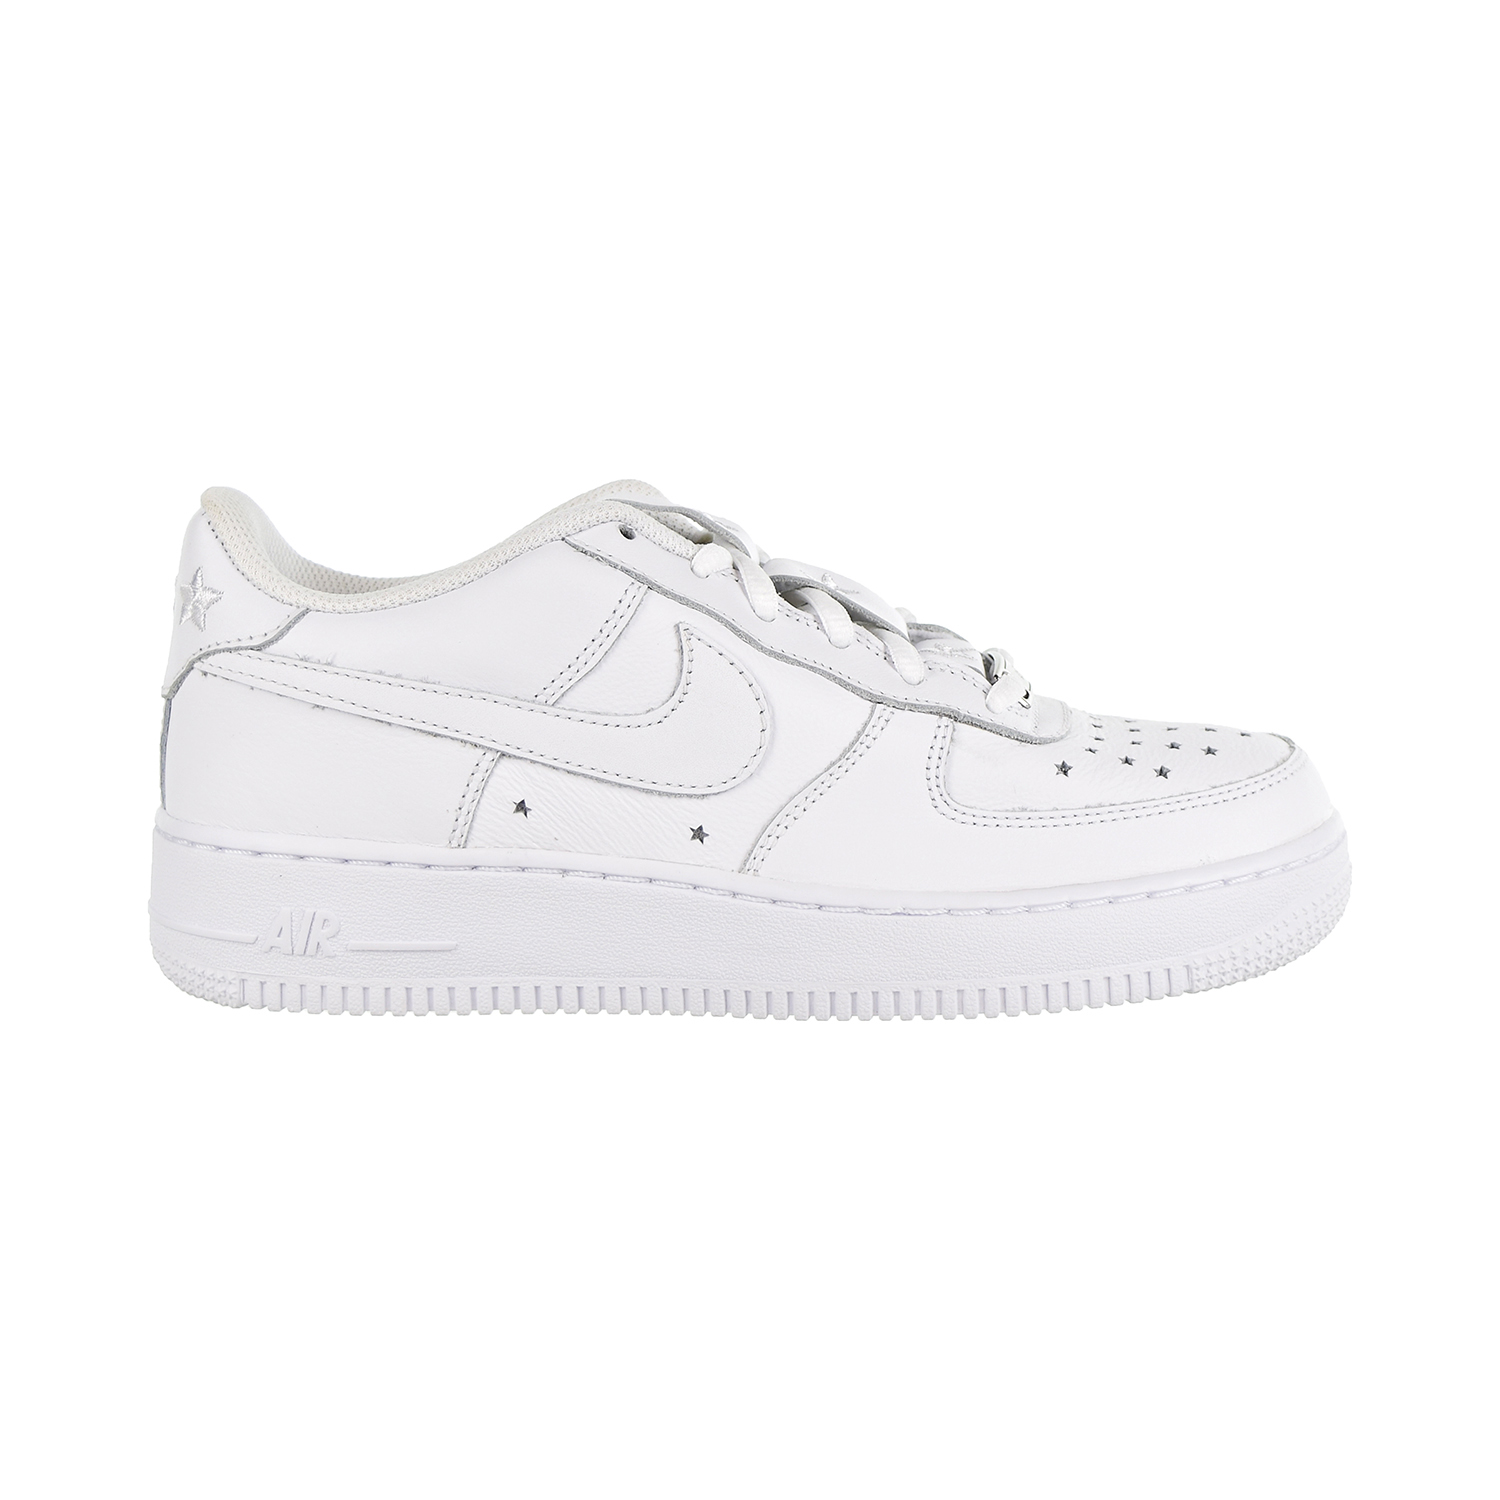 more photos 65c73 eac7d Details about Nike Air Force 1 QS Soft Leather GS Big Kids  Shoes  White White Navy AR0688-100